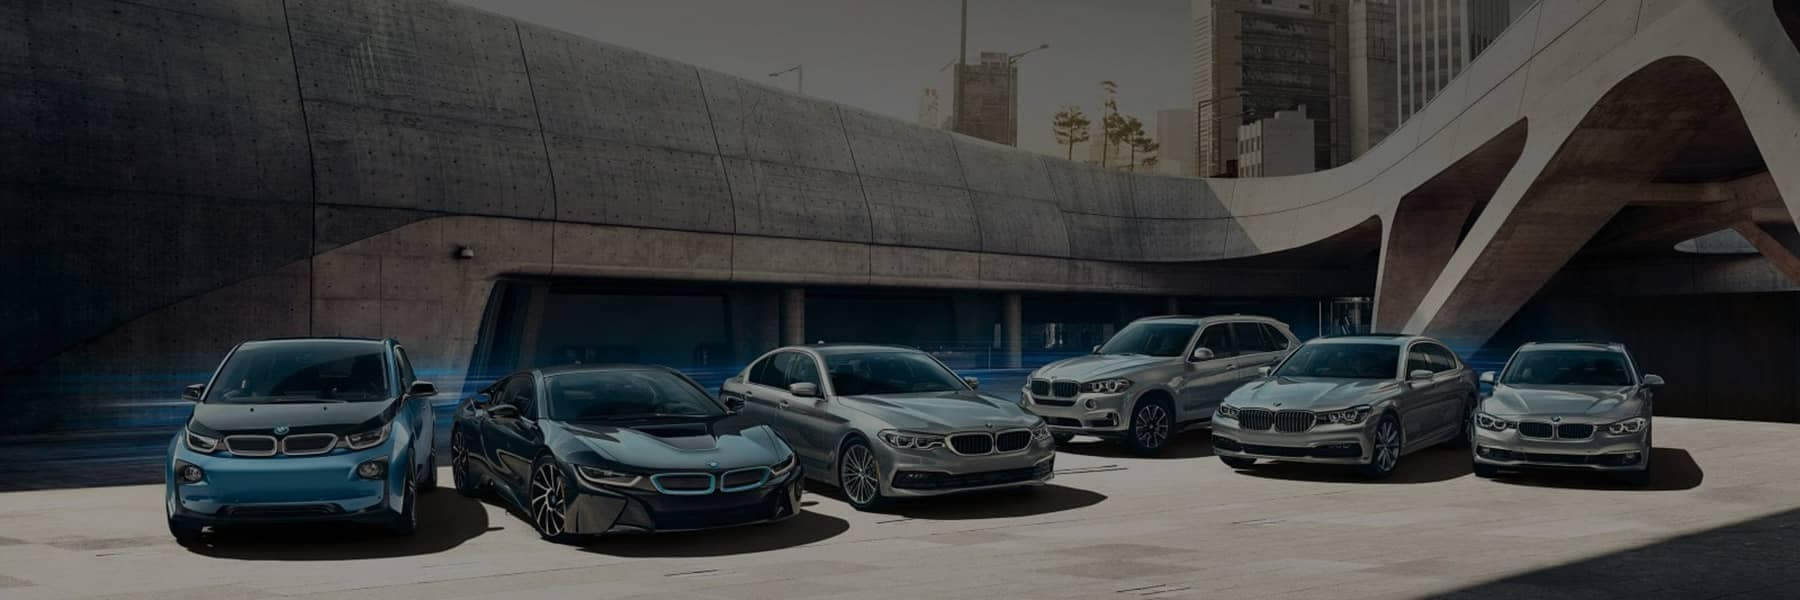 2018 2019 BMW Current Models